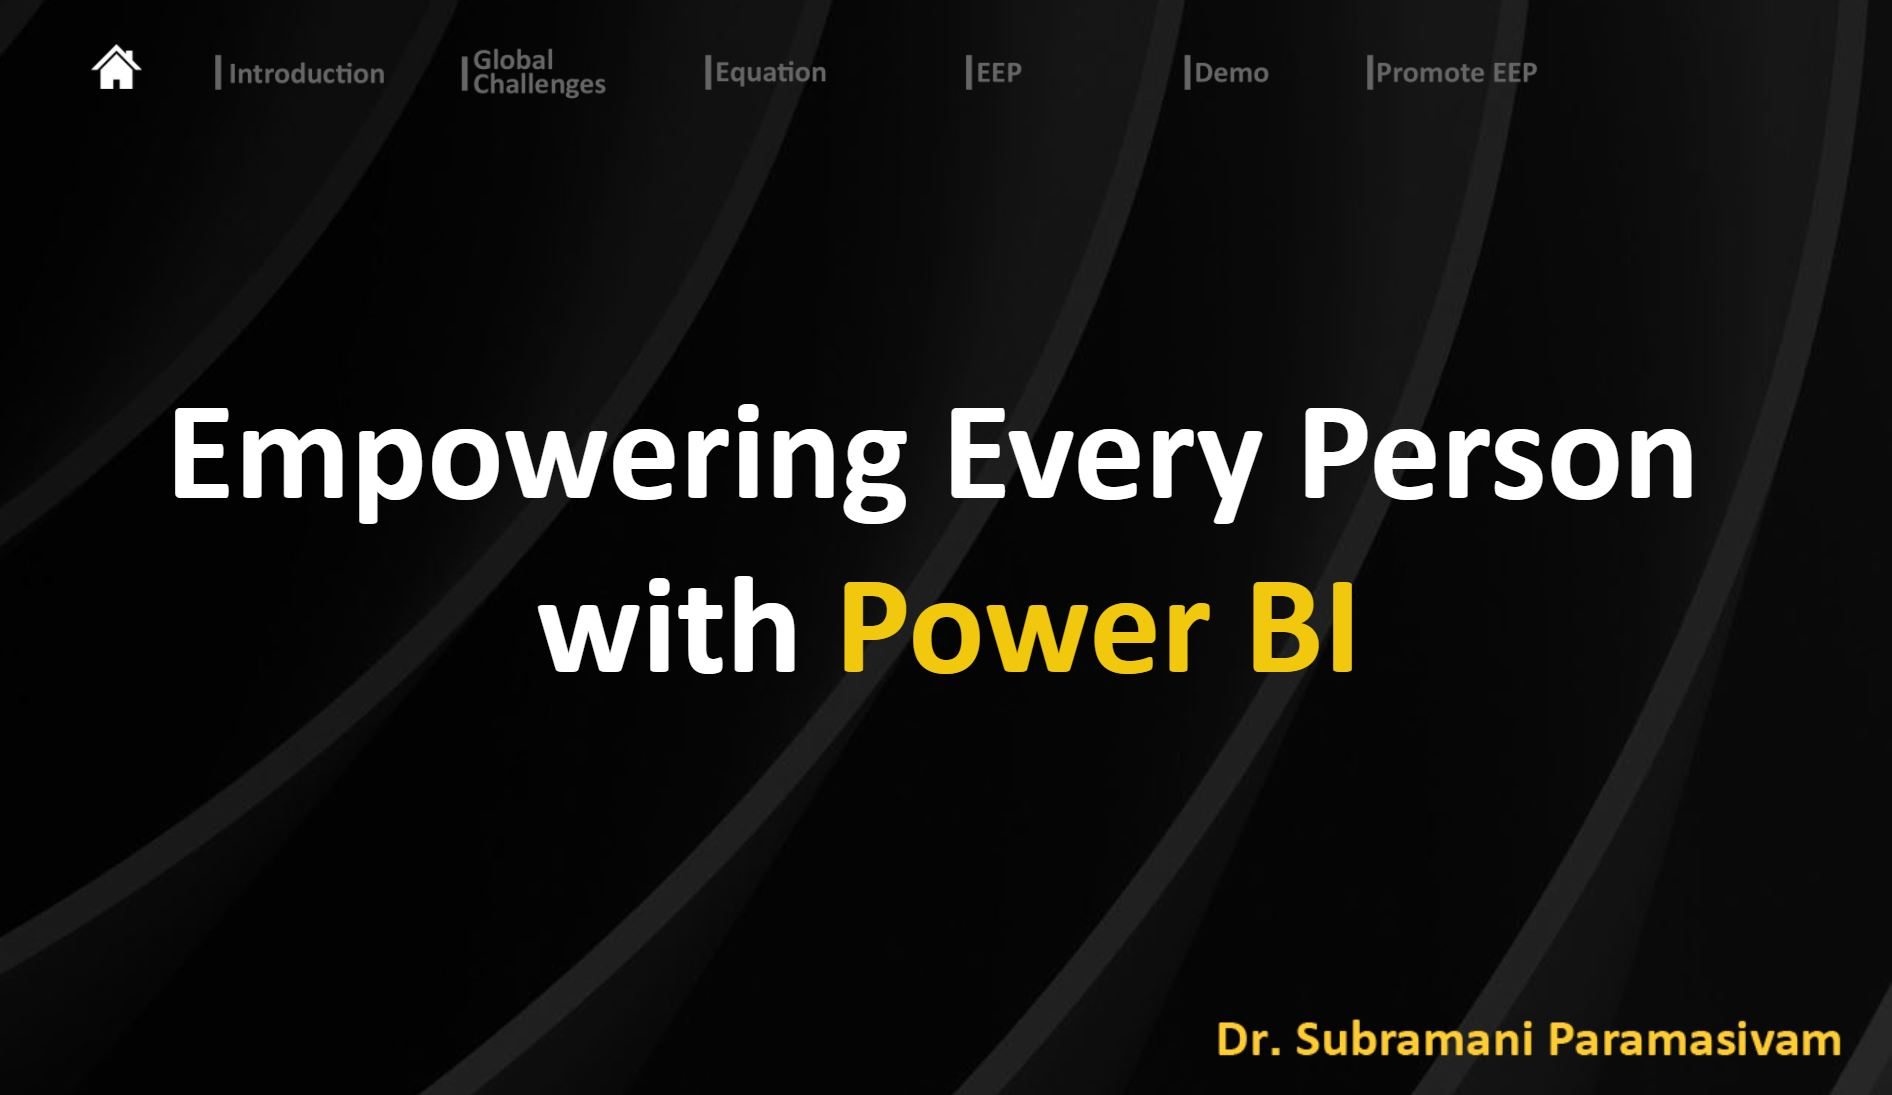 Empowering Every Person with Power BI